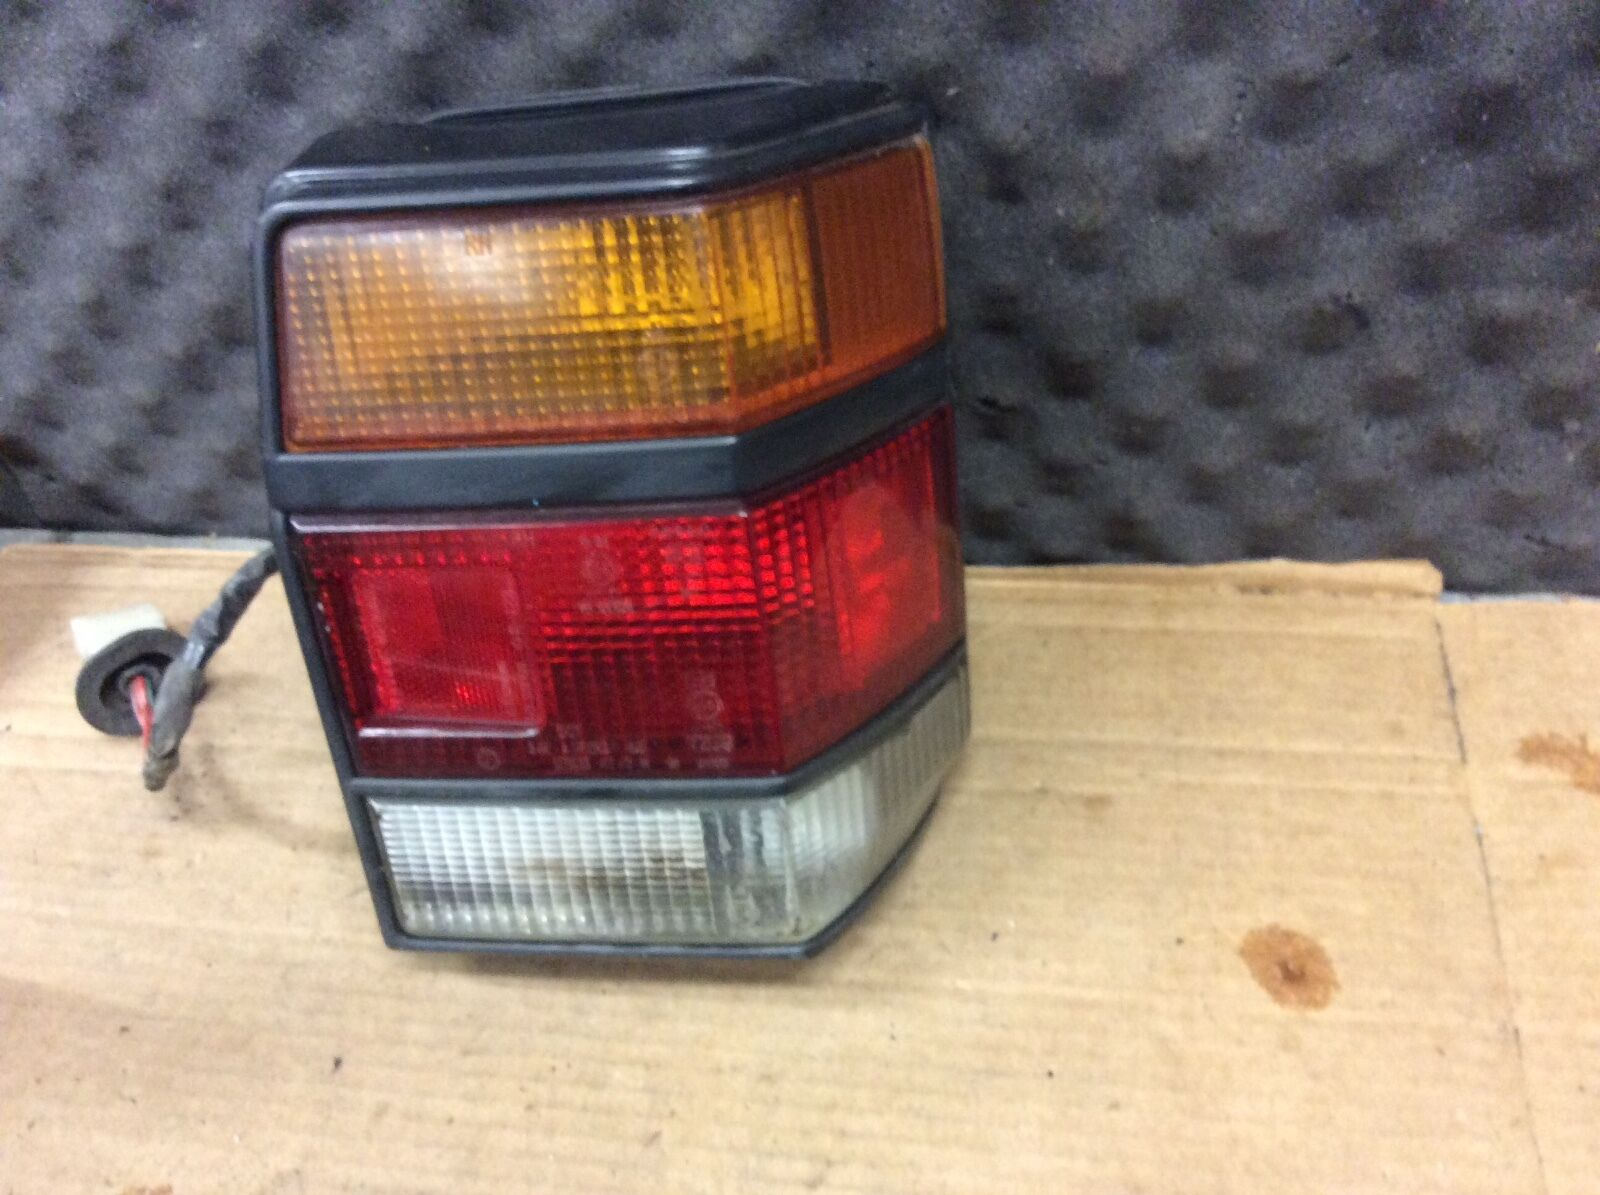 Used Subaru Justy Parts For Sale 1992 Engine Rare 1987 1988 Right Passenger Side Tail Light Nice